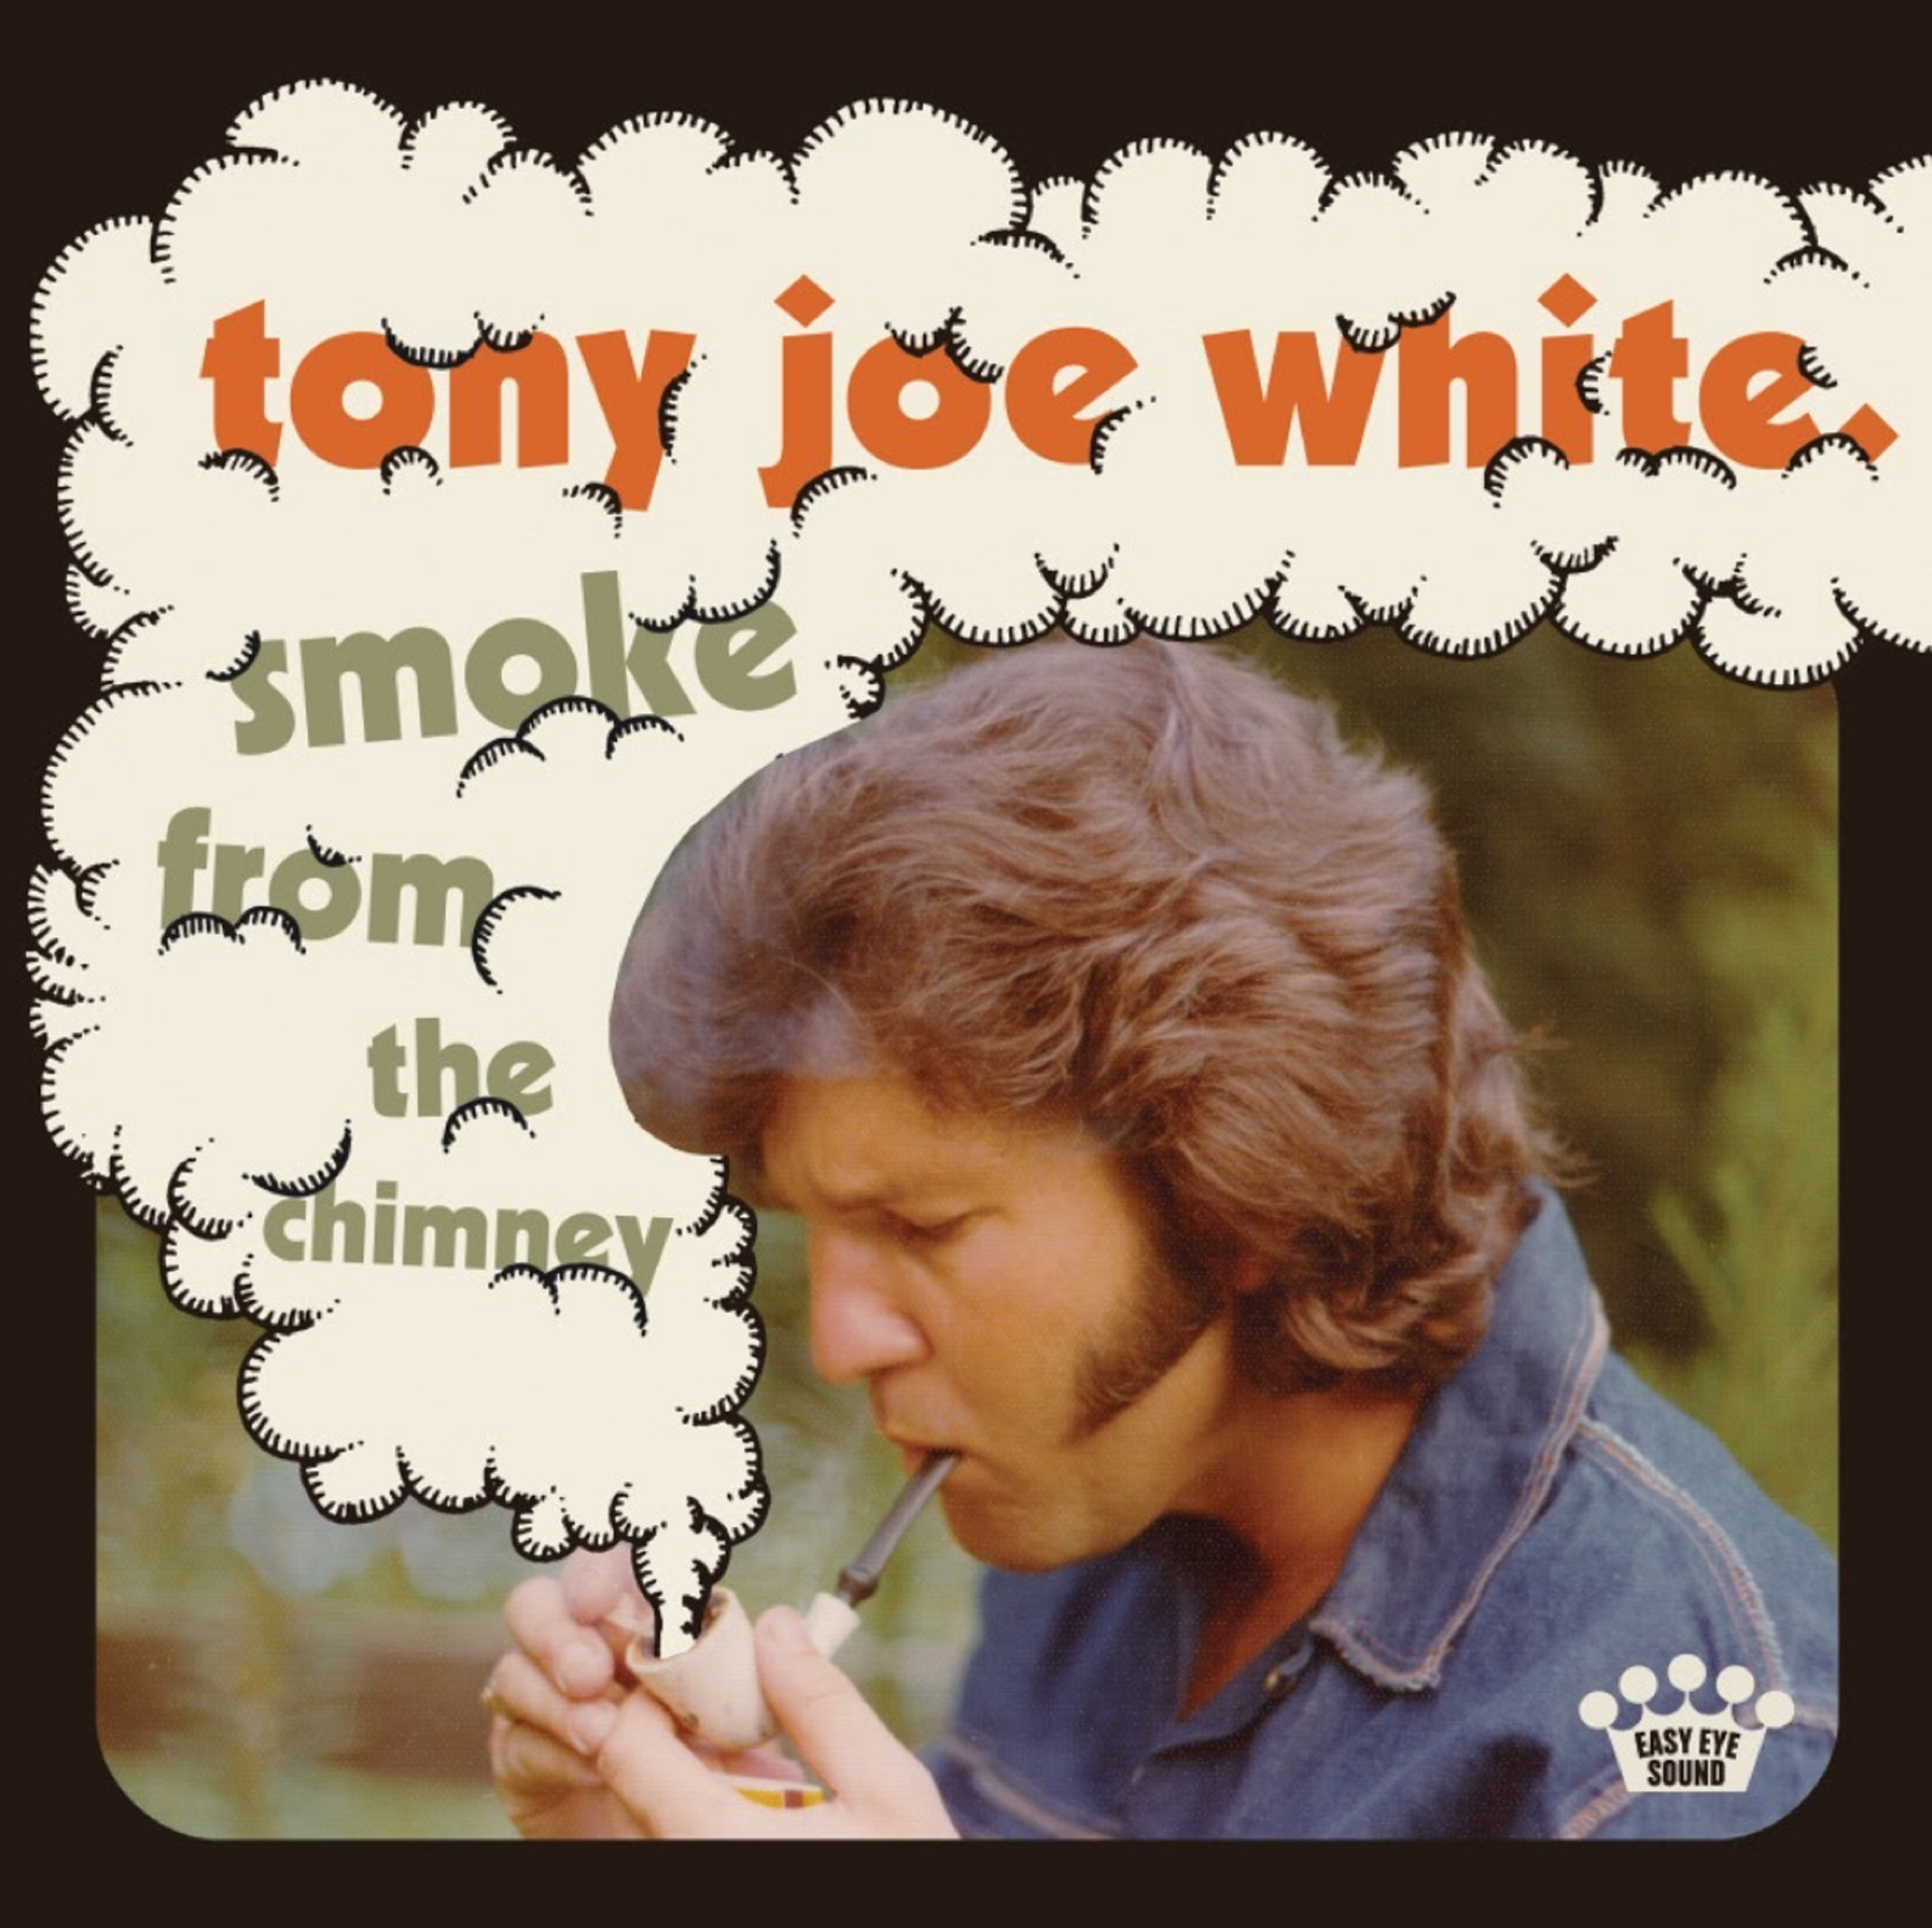 Posthumous Tony Joe White Album, Smoke from the Chimney, Set For May 7th Release